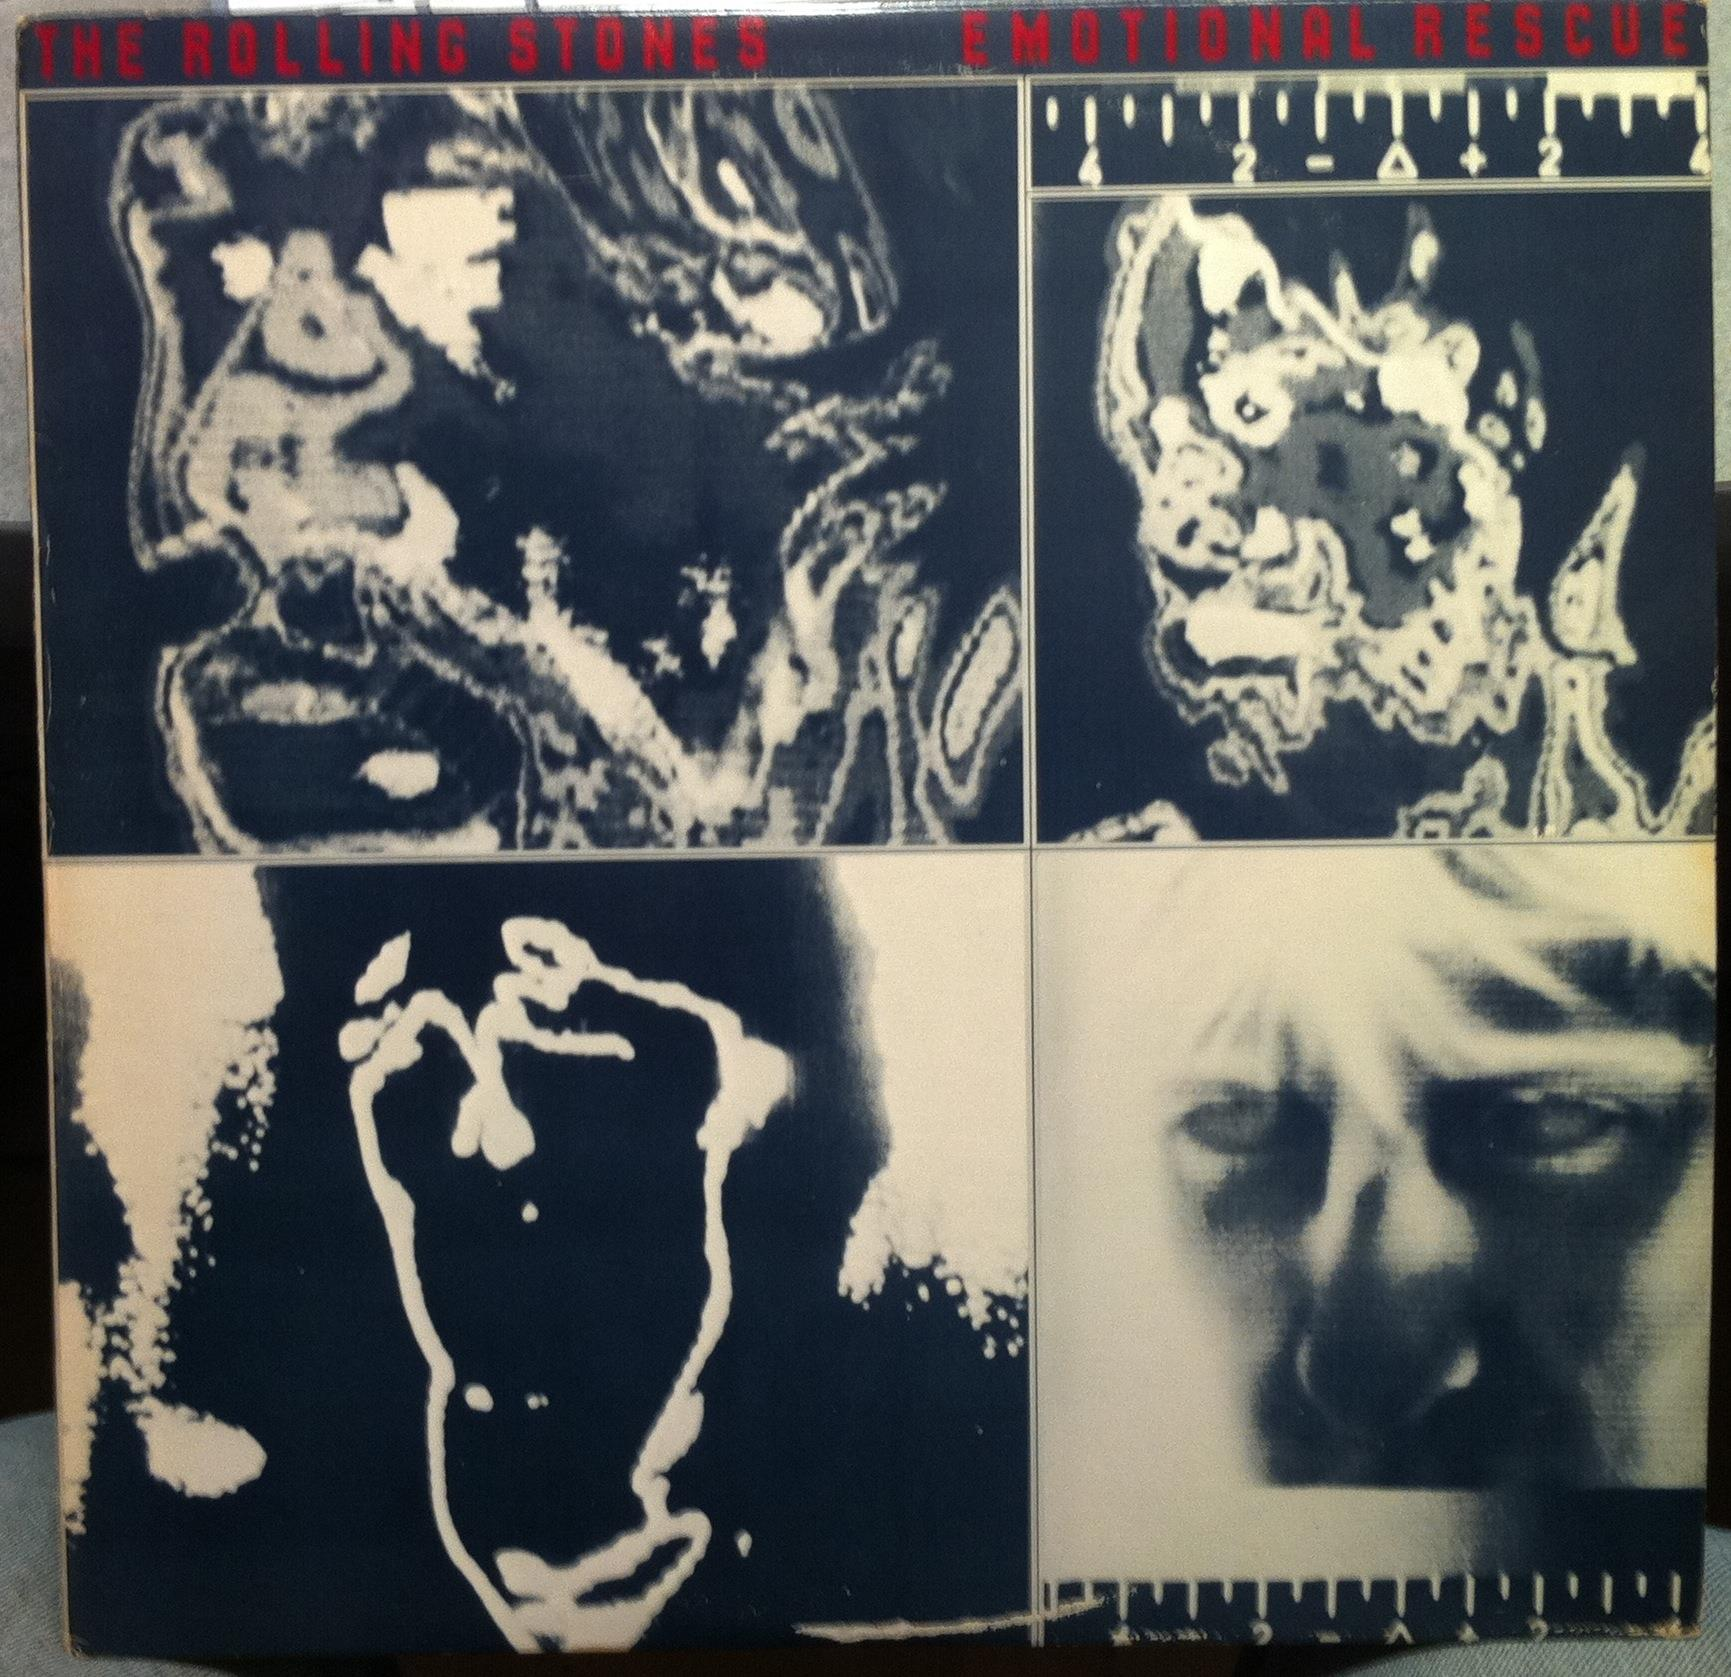 ROLLING STONES - Rolling Stones Emotional Rescue Lp Vg+ W/poster Coc 16015 Sterling Mastered (emotional Rescue)